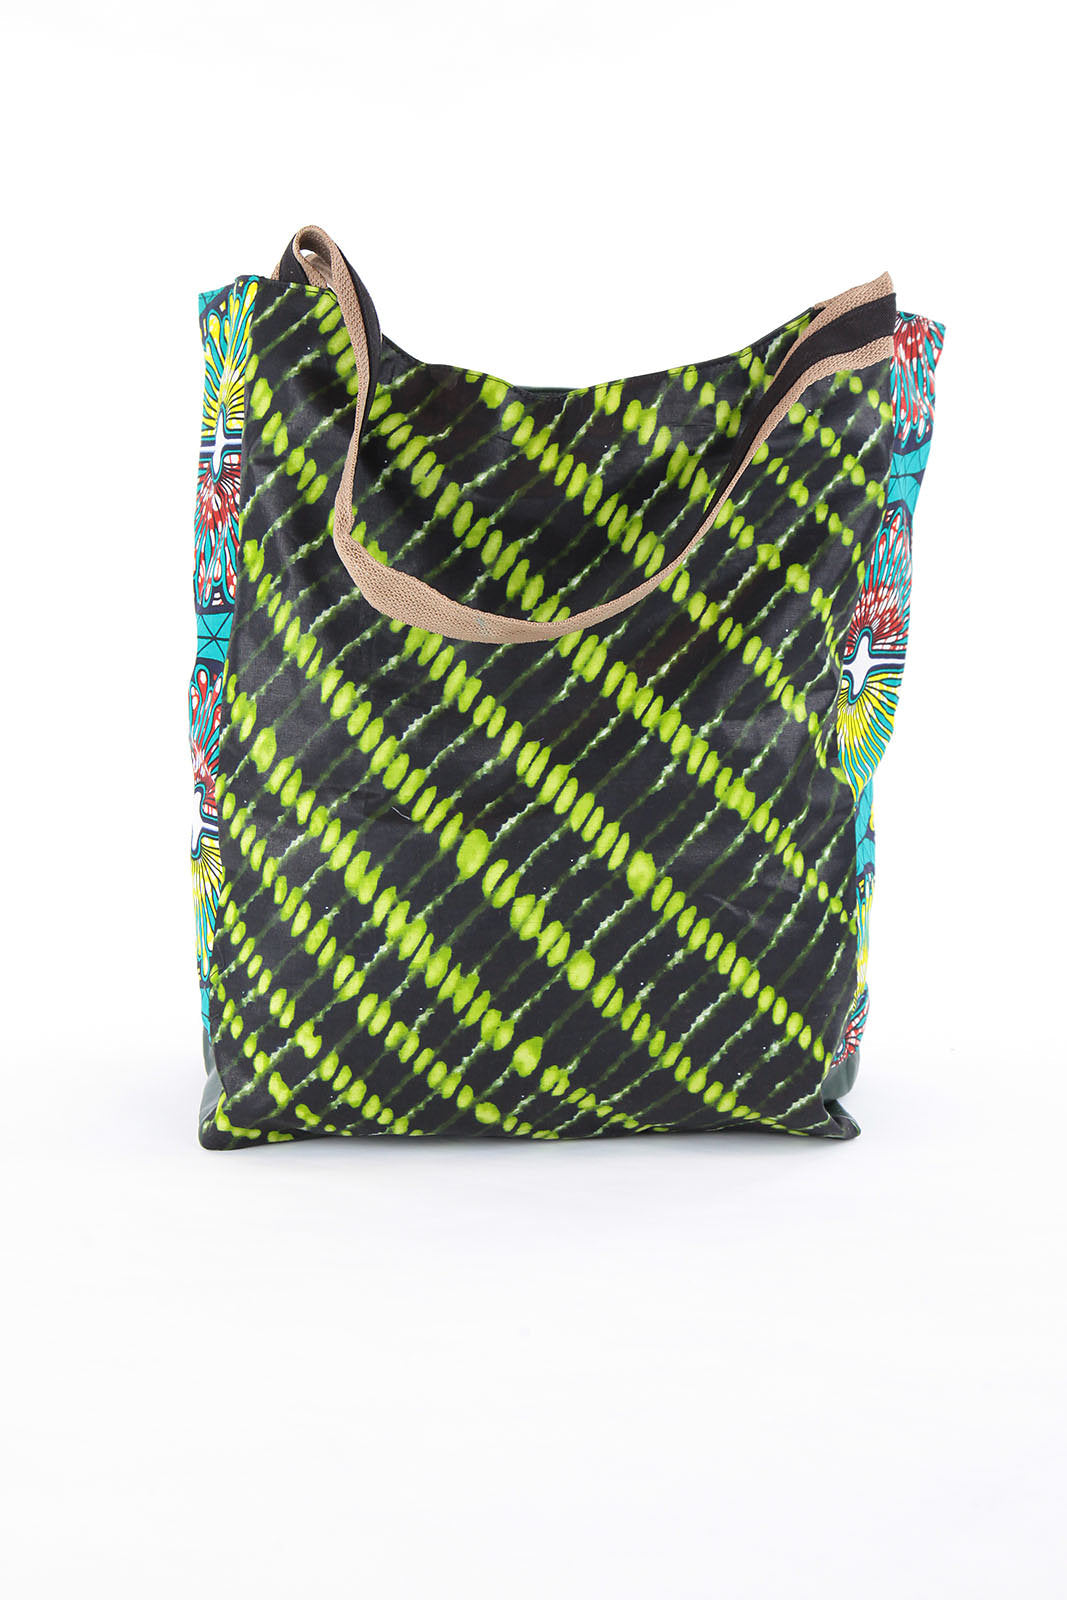 African Print shopper bag-Green Batik Print - Africas Closet